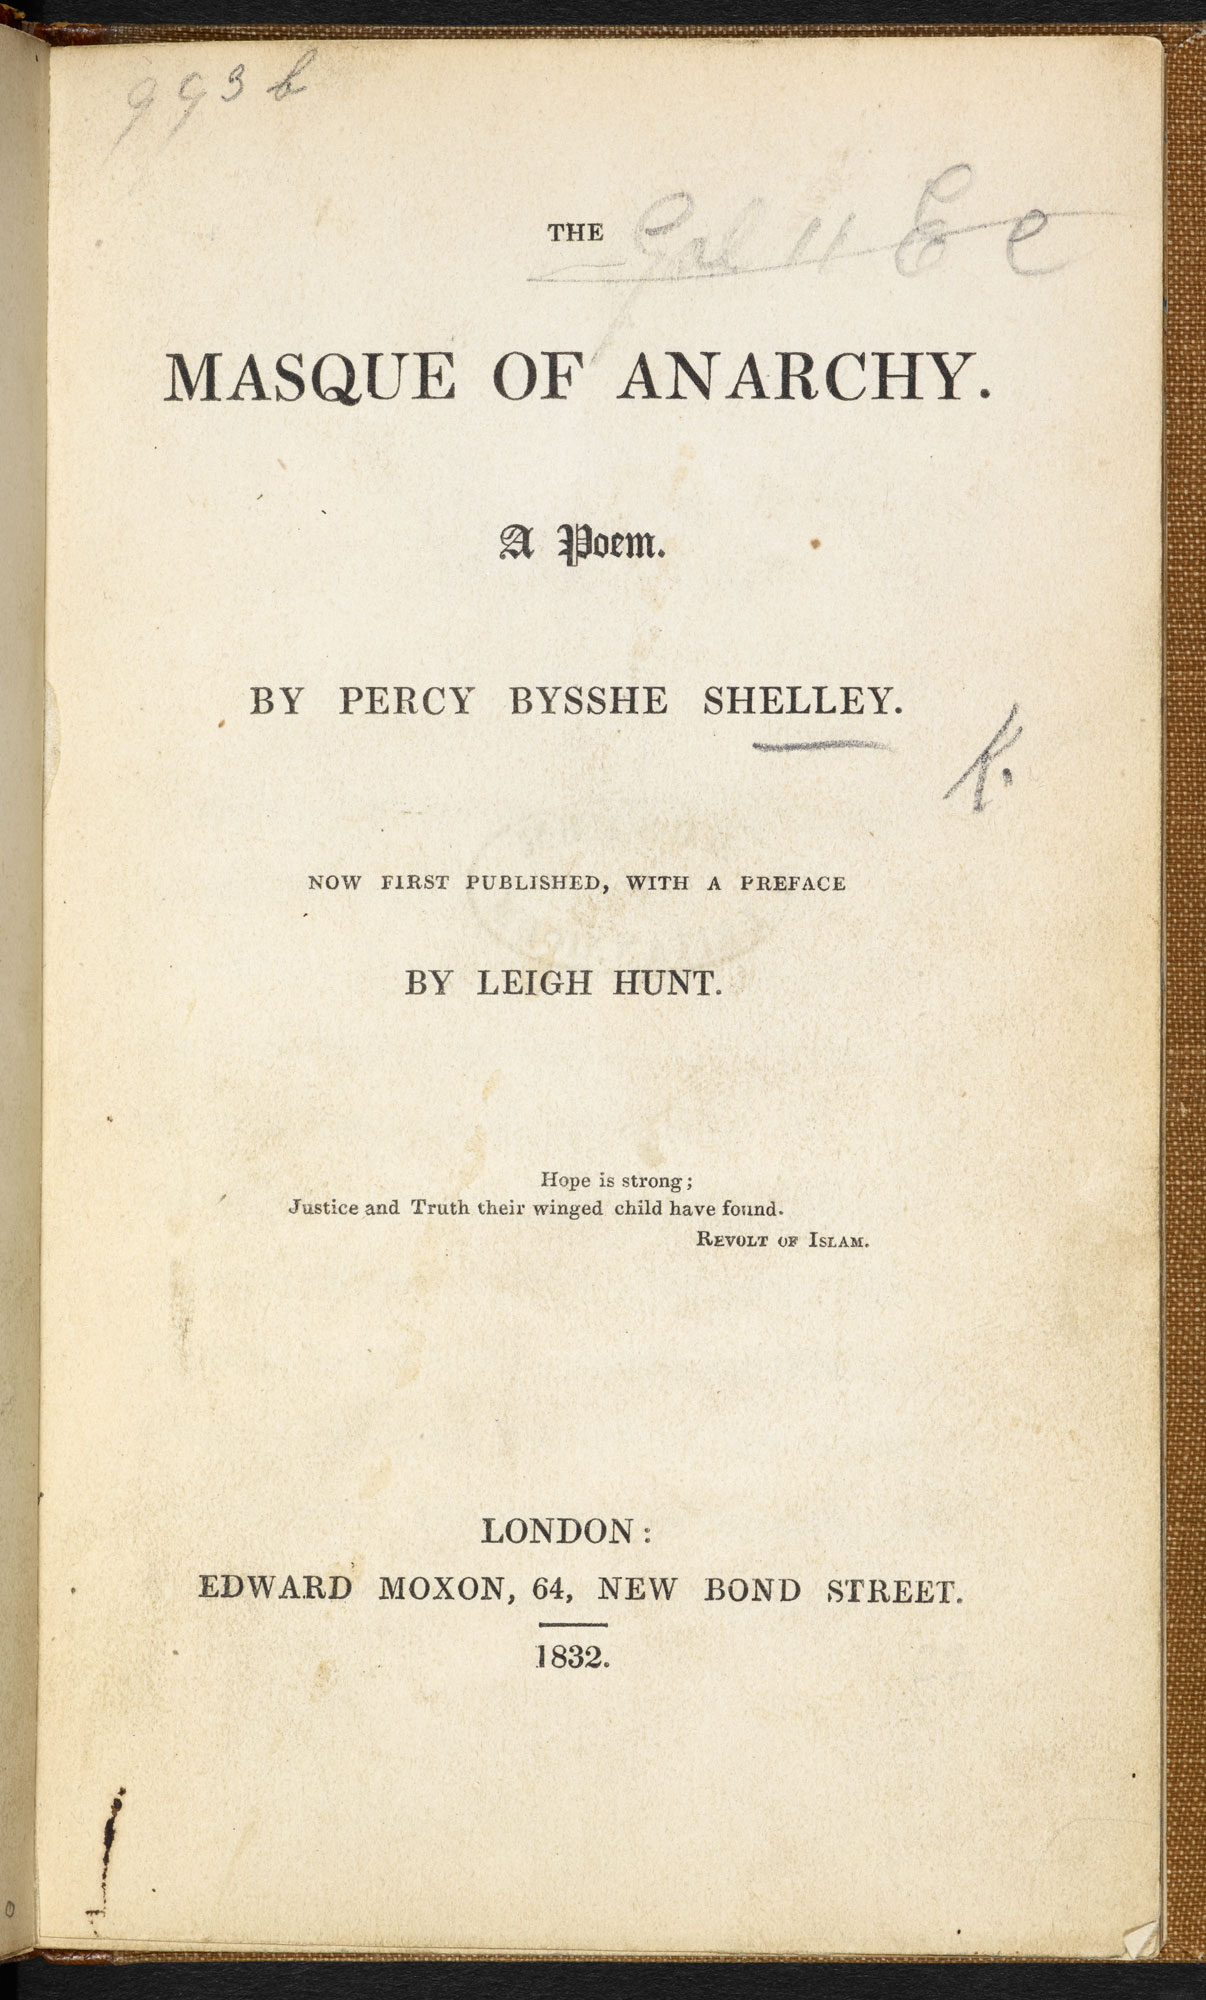 First publication of 'The Masque of Anarchy' by P B Shelley [page: title page]